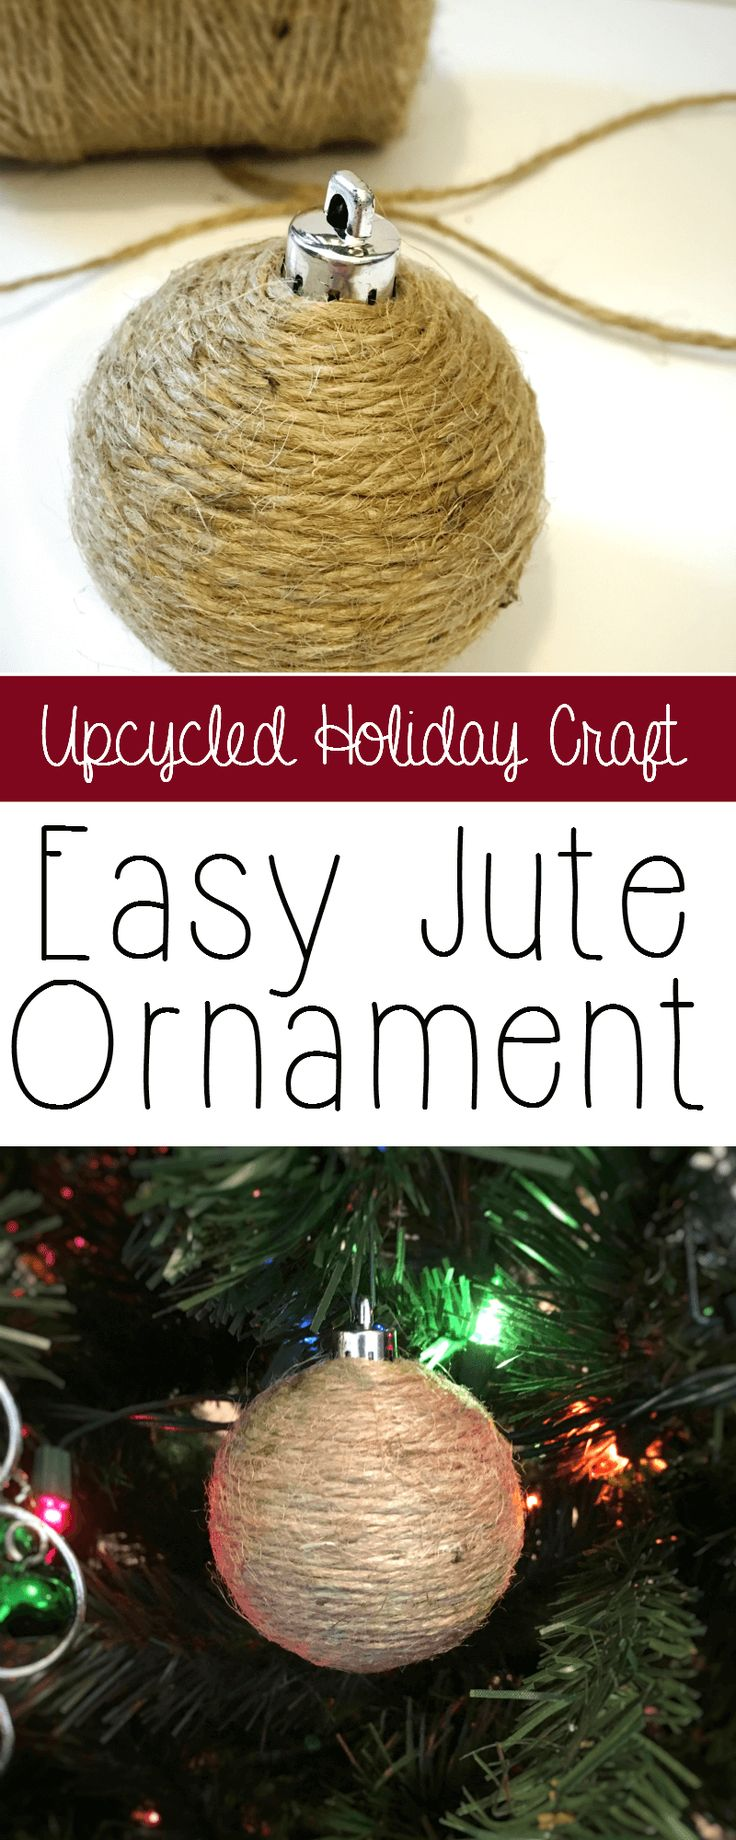 These upcycled ornaments are simple and so inexpensive. Revamp your Christmas decor with beautiful, rustic homemade jute ornaments - a great craft to reuse old ornaments.   thecrunchychronicles.com via @thecrunchychron